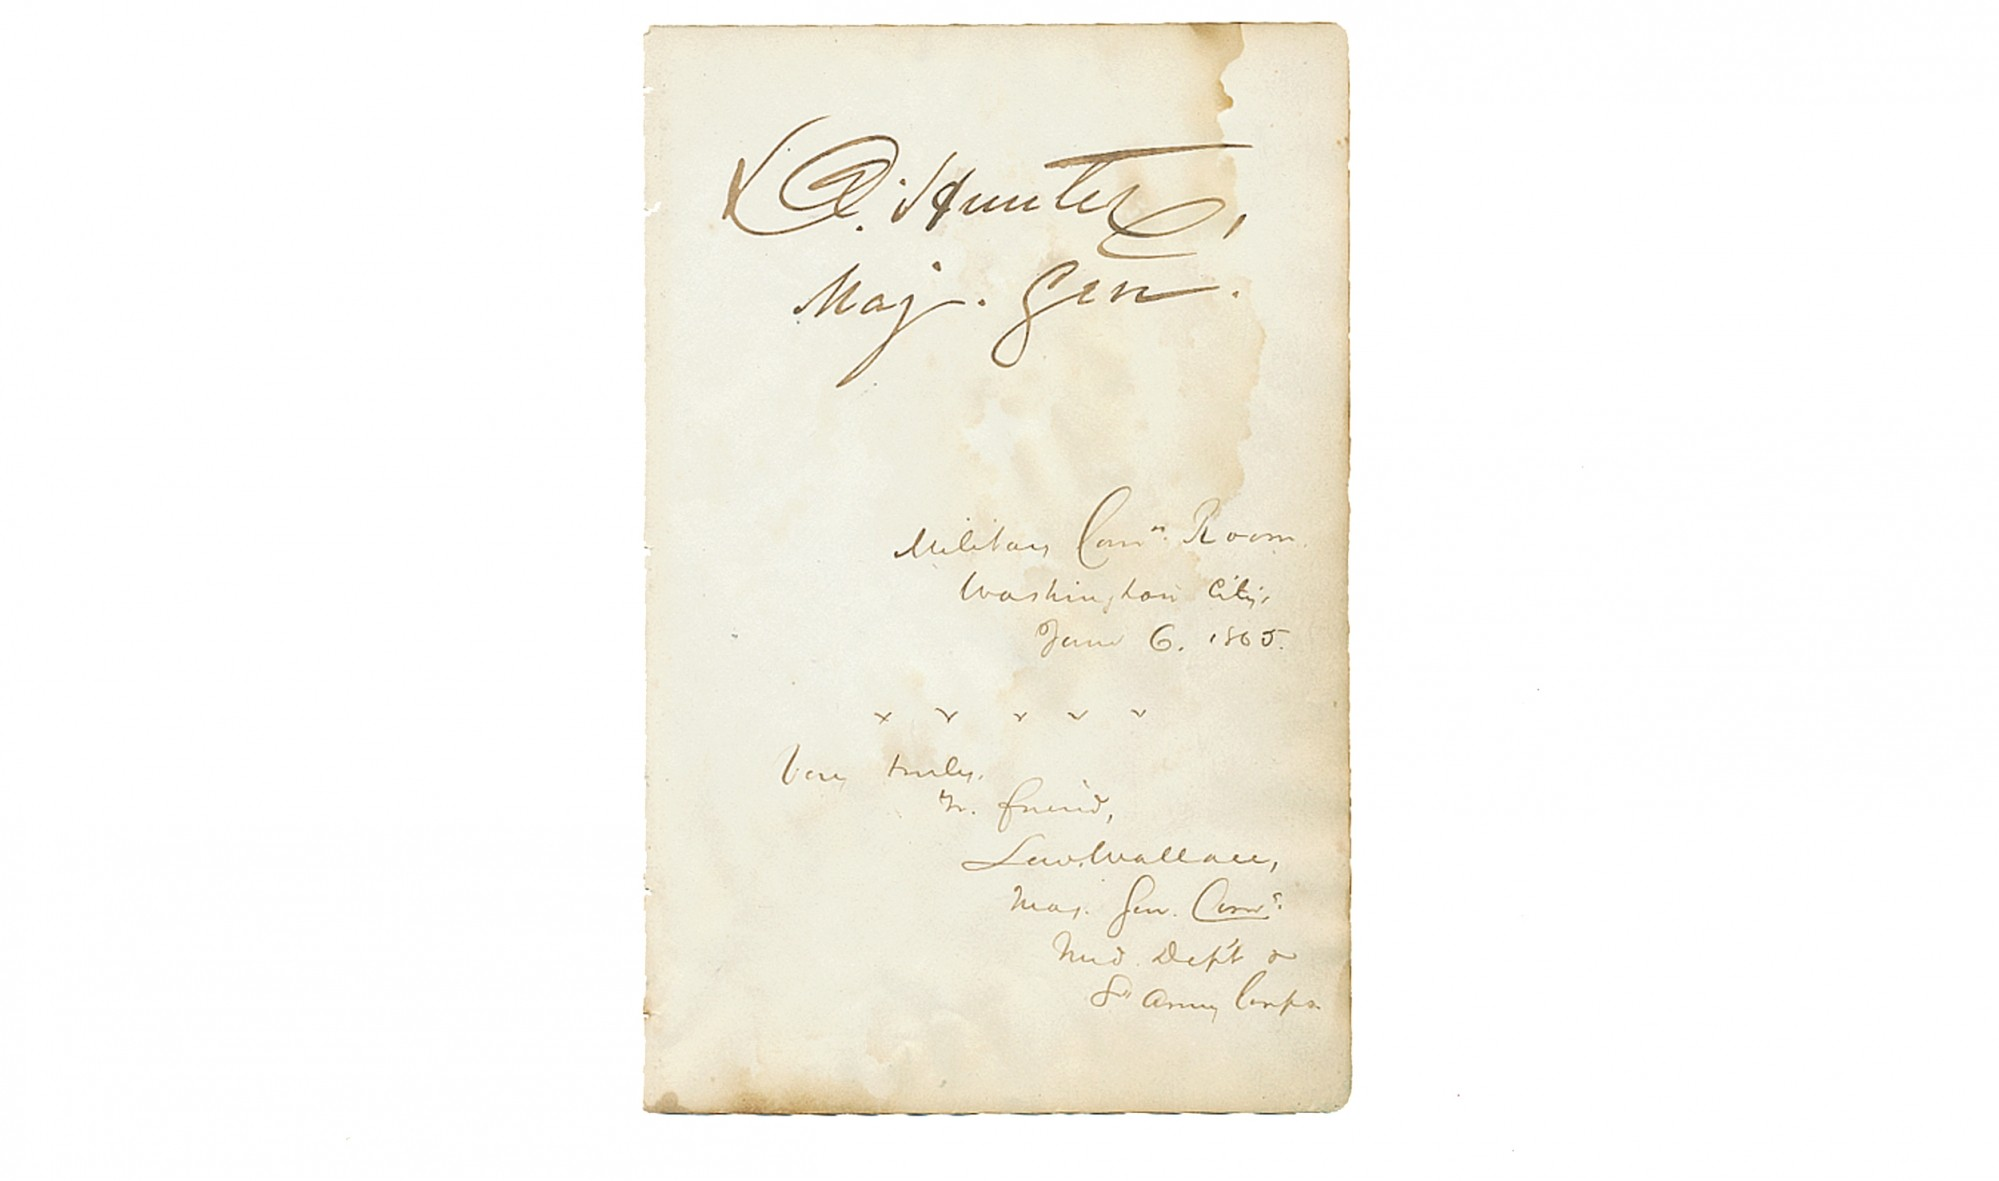 AUTOGRAPHS OF TWO MEMBERS OF THE LINCOLN ASSASSINATION COMMISSION